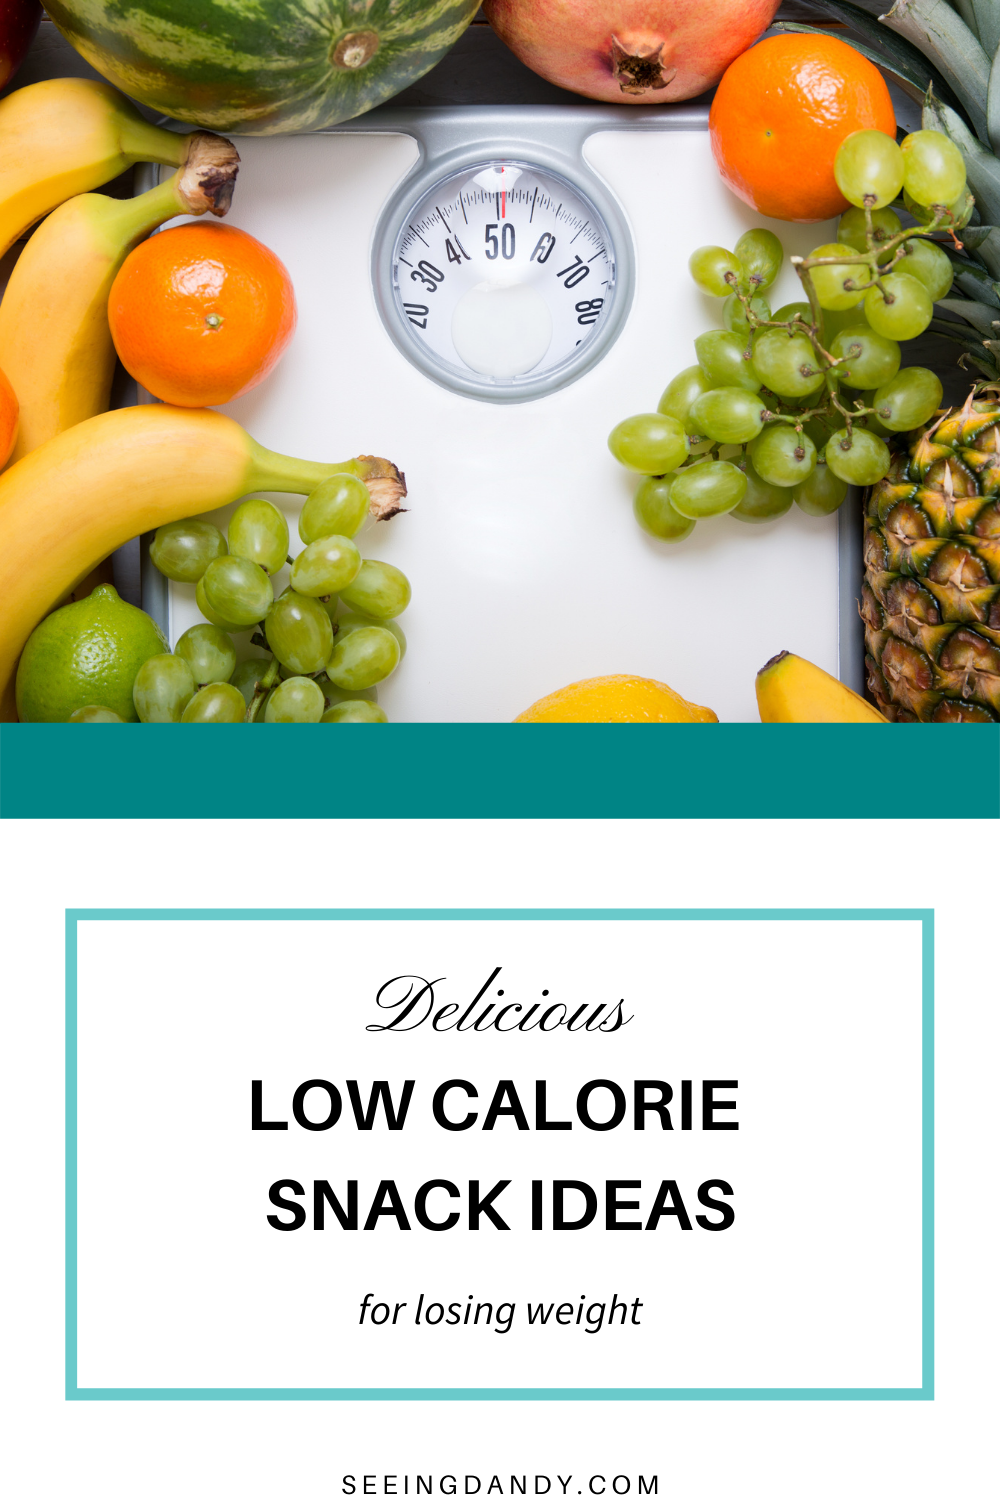 low calorie snack ideas, white bathroom scale, fruit bowl, pineapple, limes, bananas, oranges, green grapes, healthy recipes, losing weight, watermelon, pomegranate